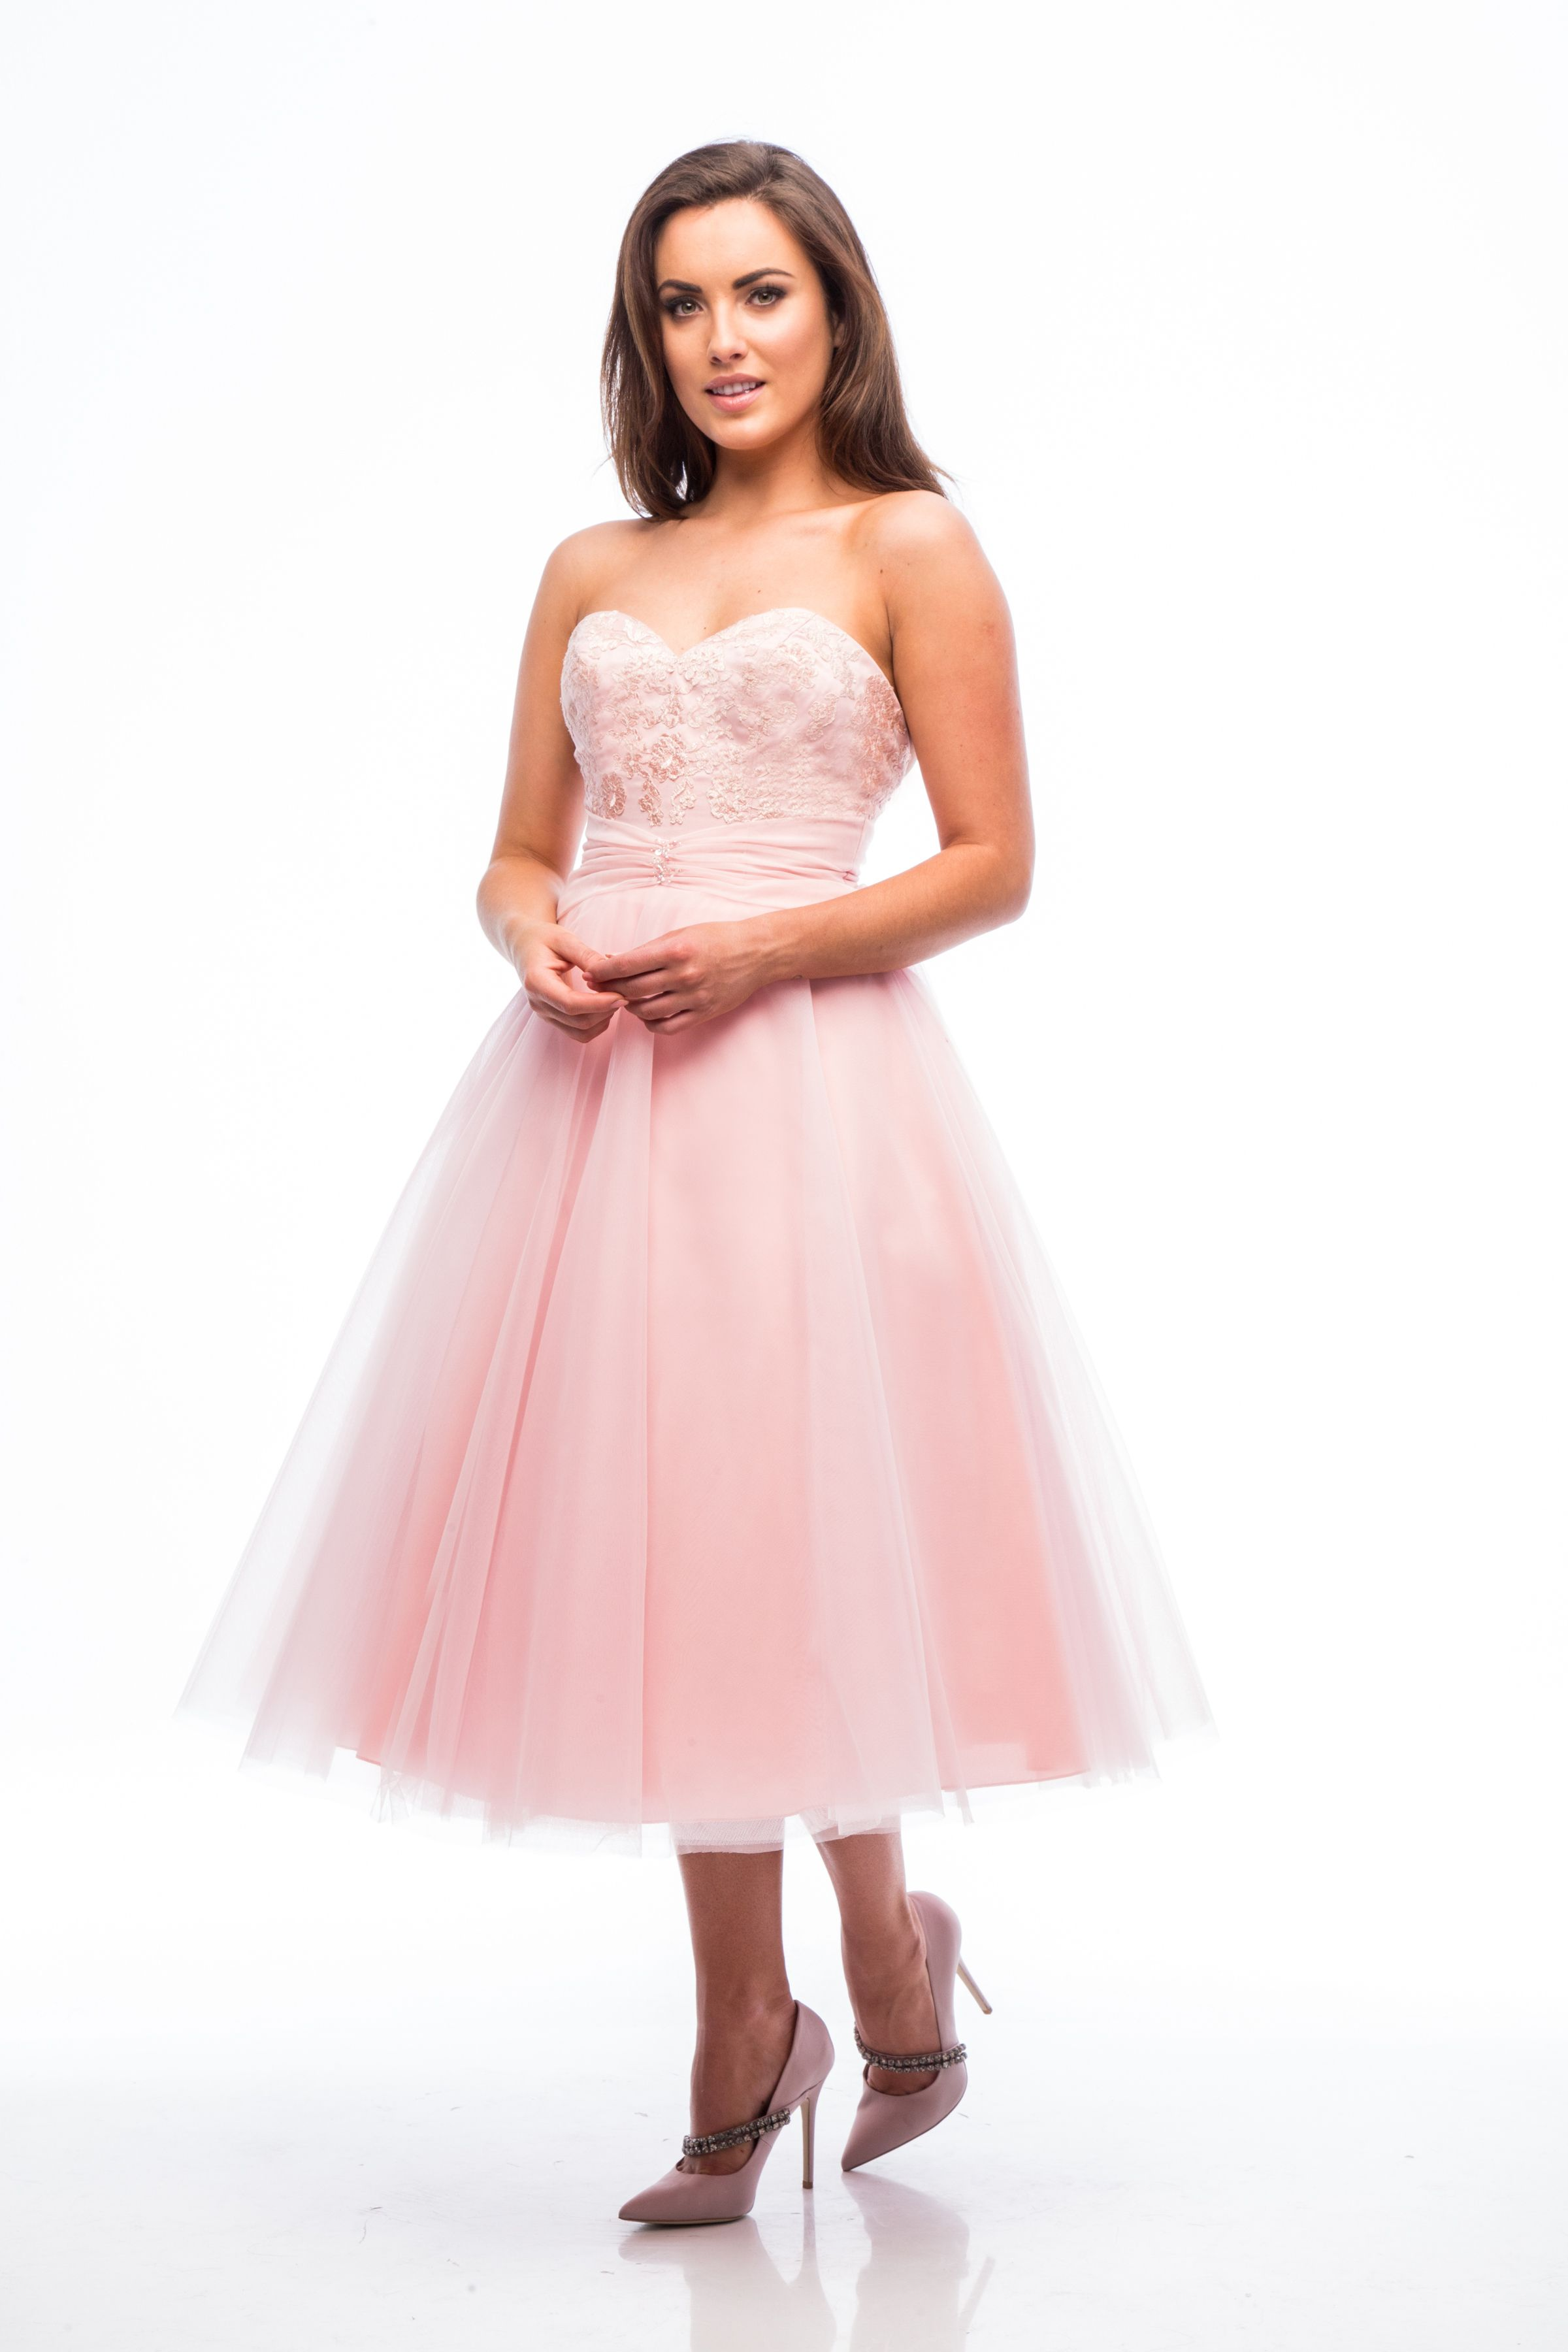 Tulle bridesmaid dress in melon. | Special Day Bridesmaids | Pinterest